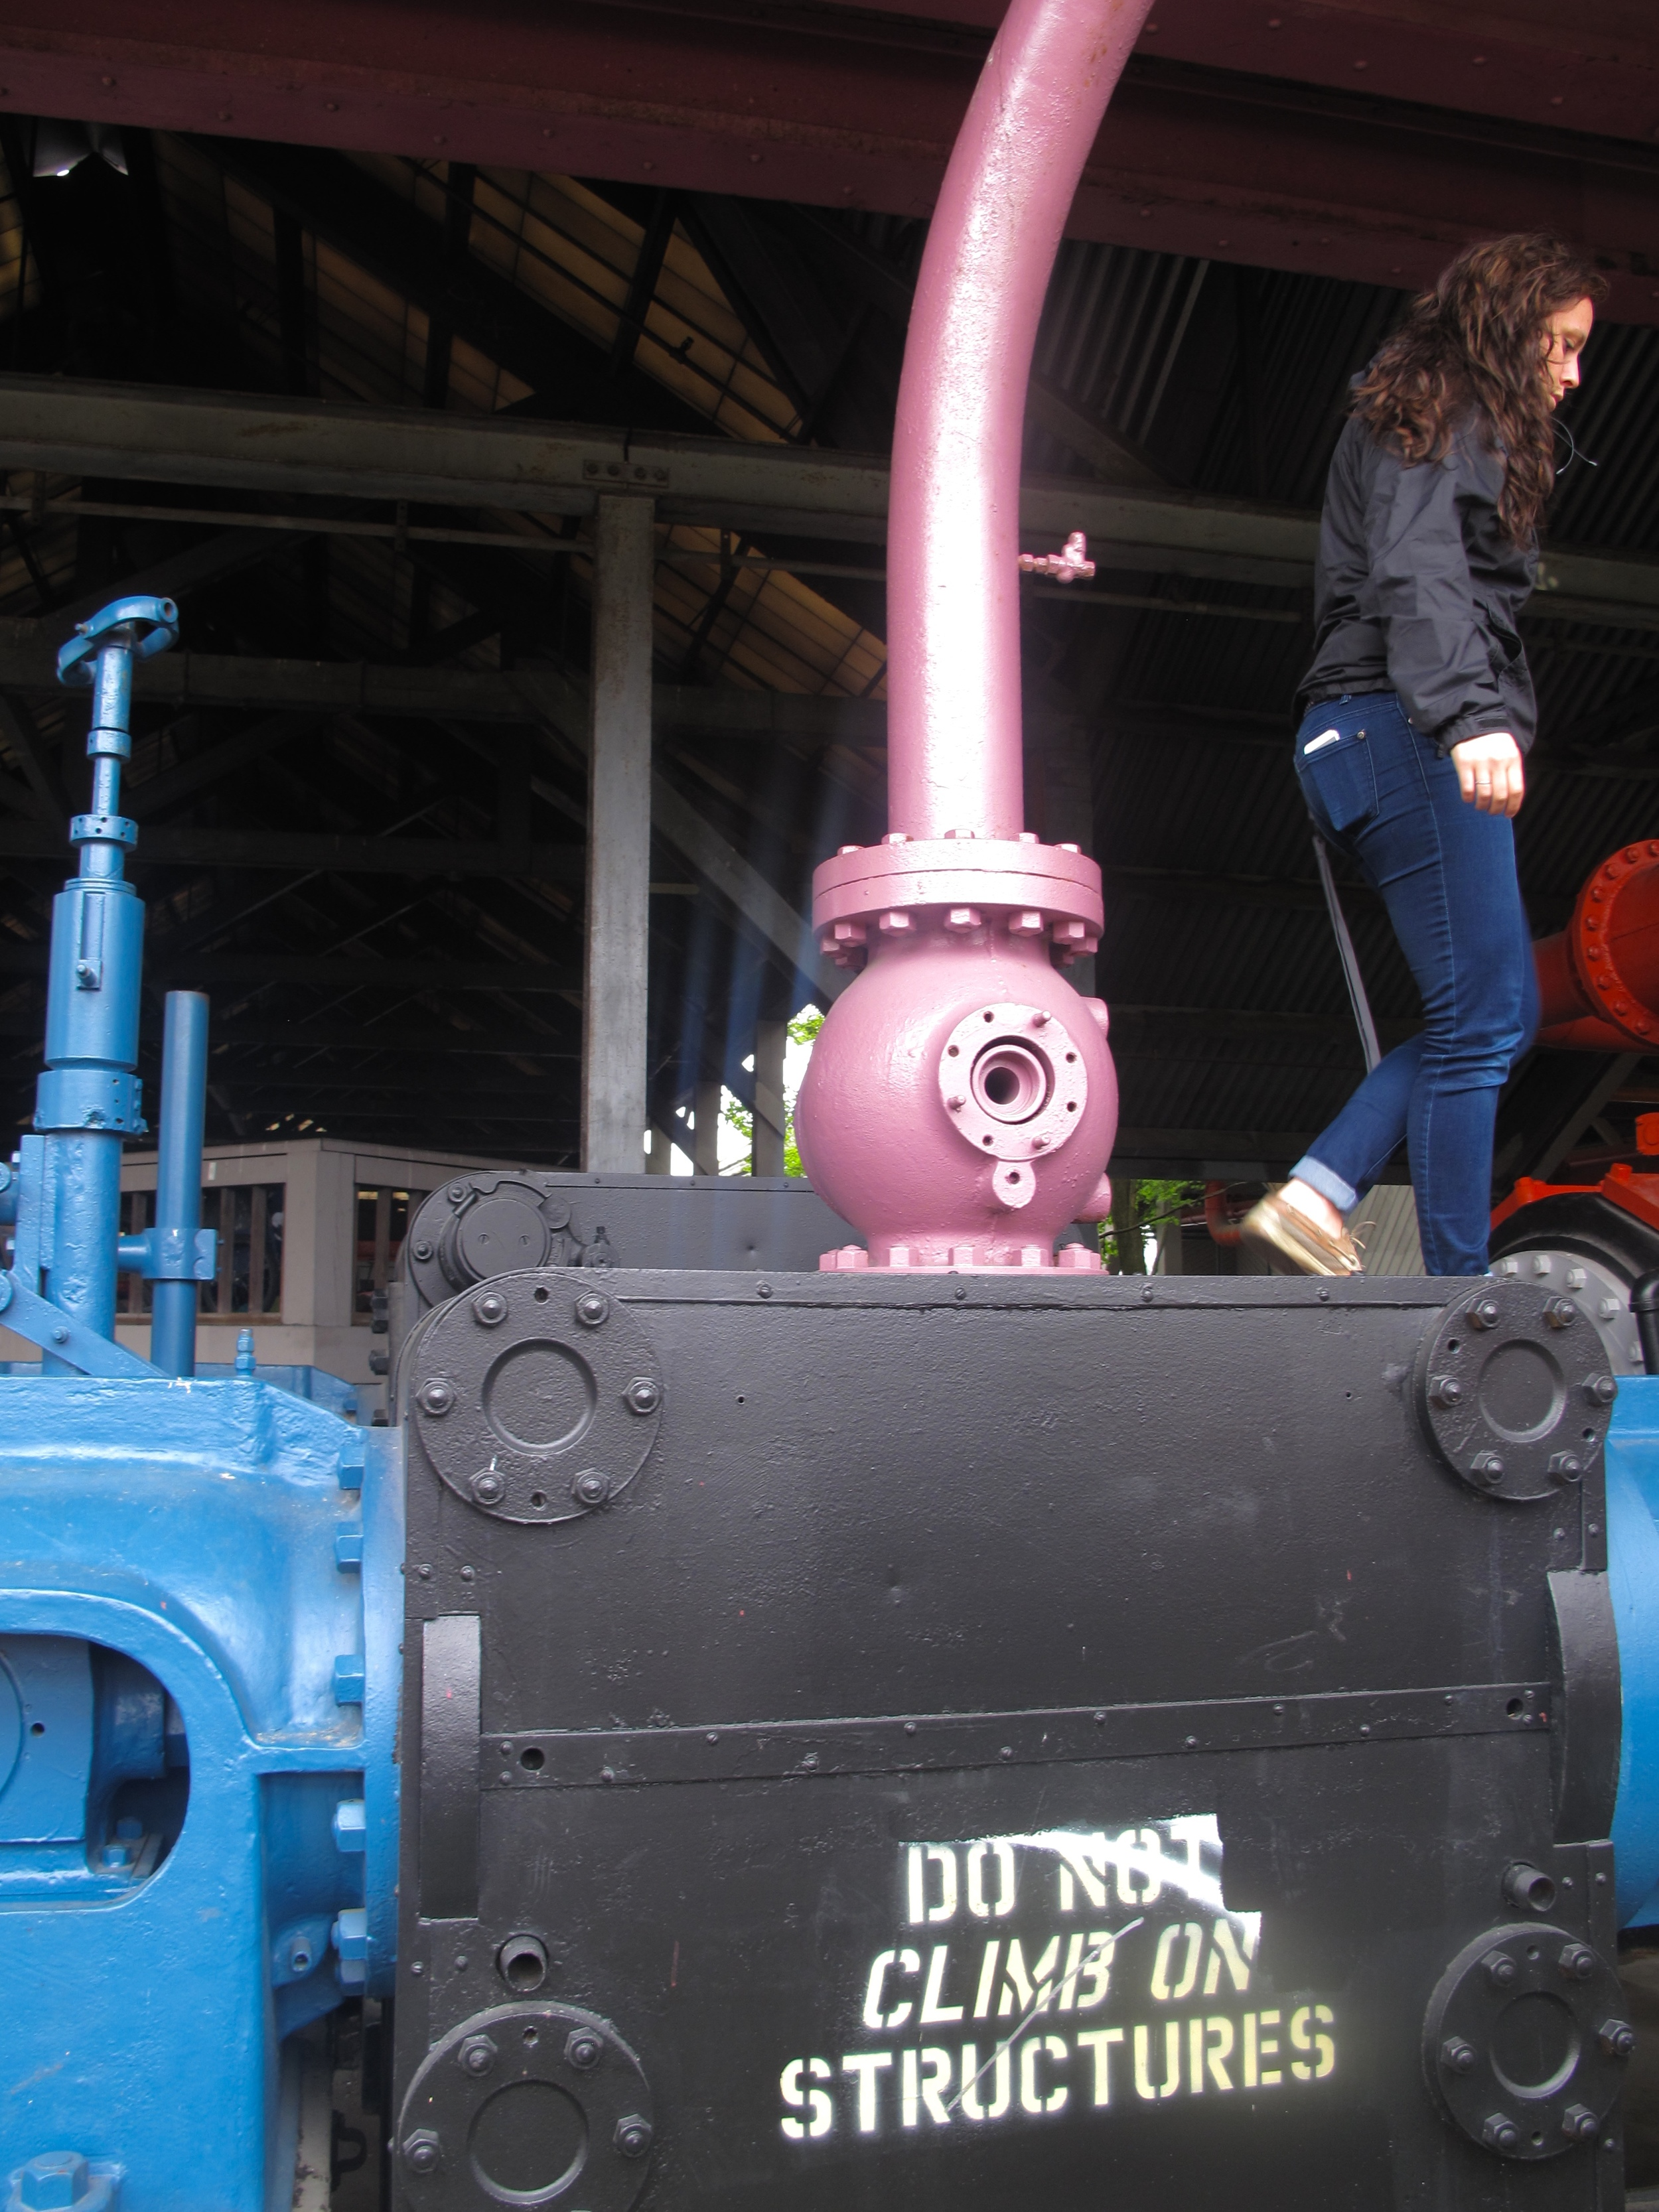 Mucking around on the old machines at Gasworks Park.